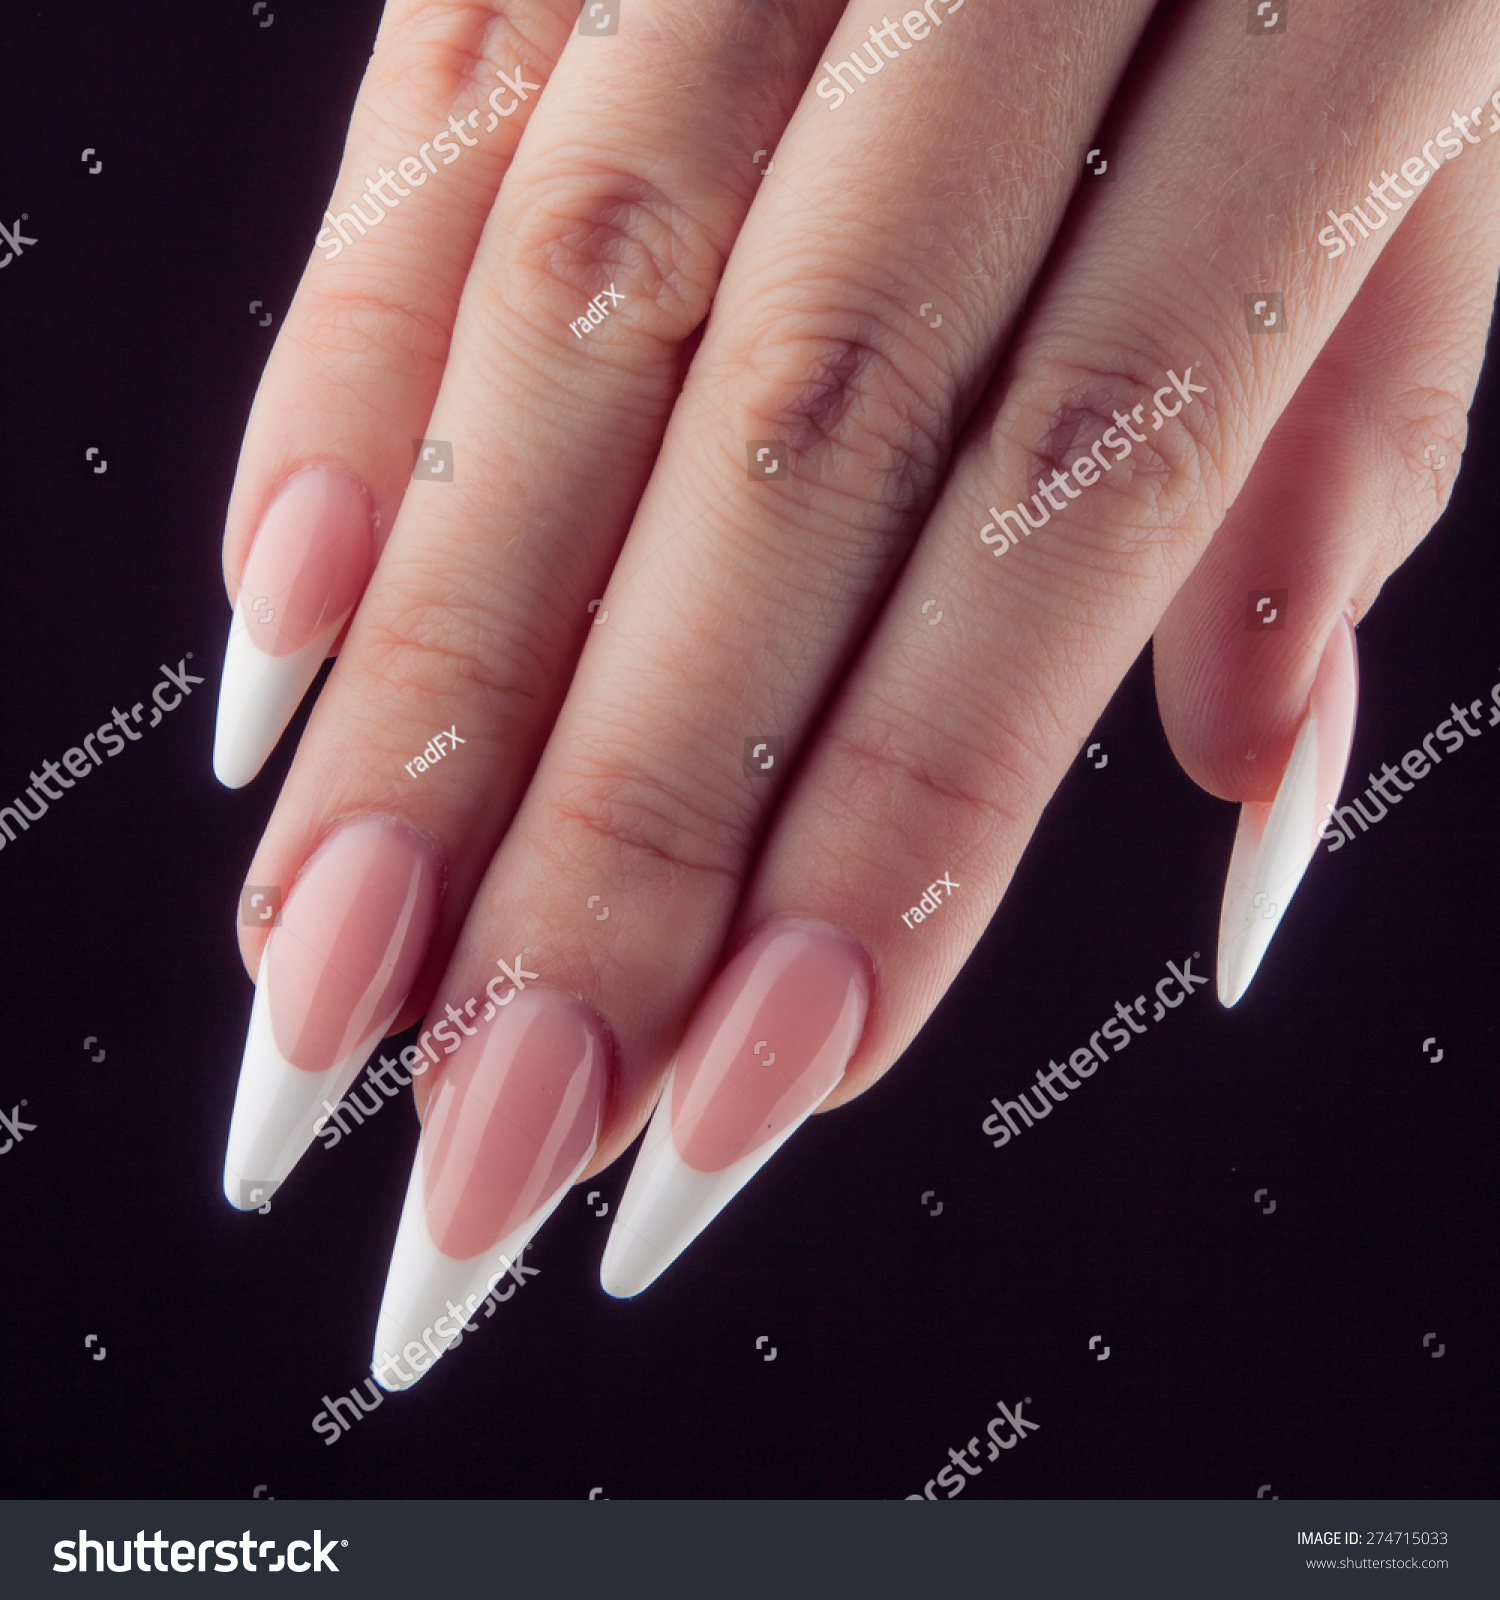 Painted Extreme Long White Nails Hands Stock Photo & Image (Royalty ...